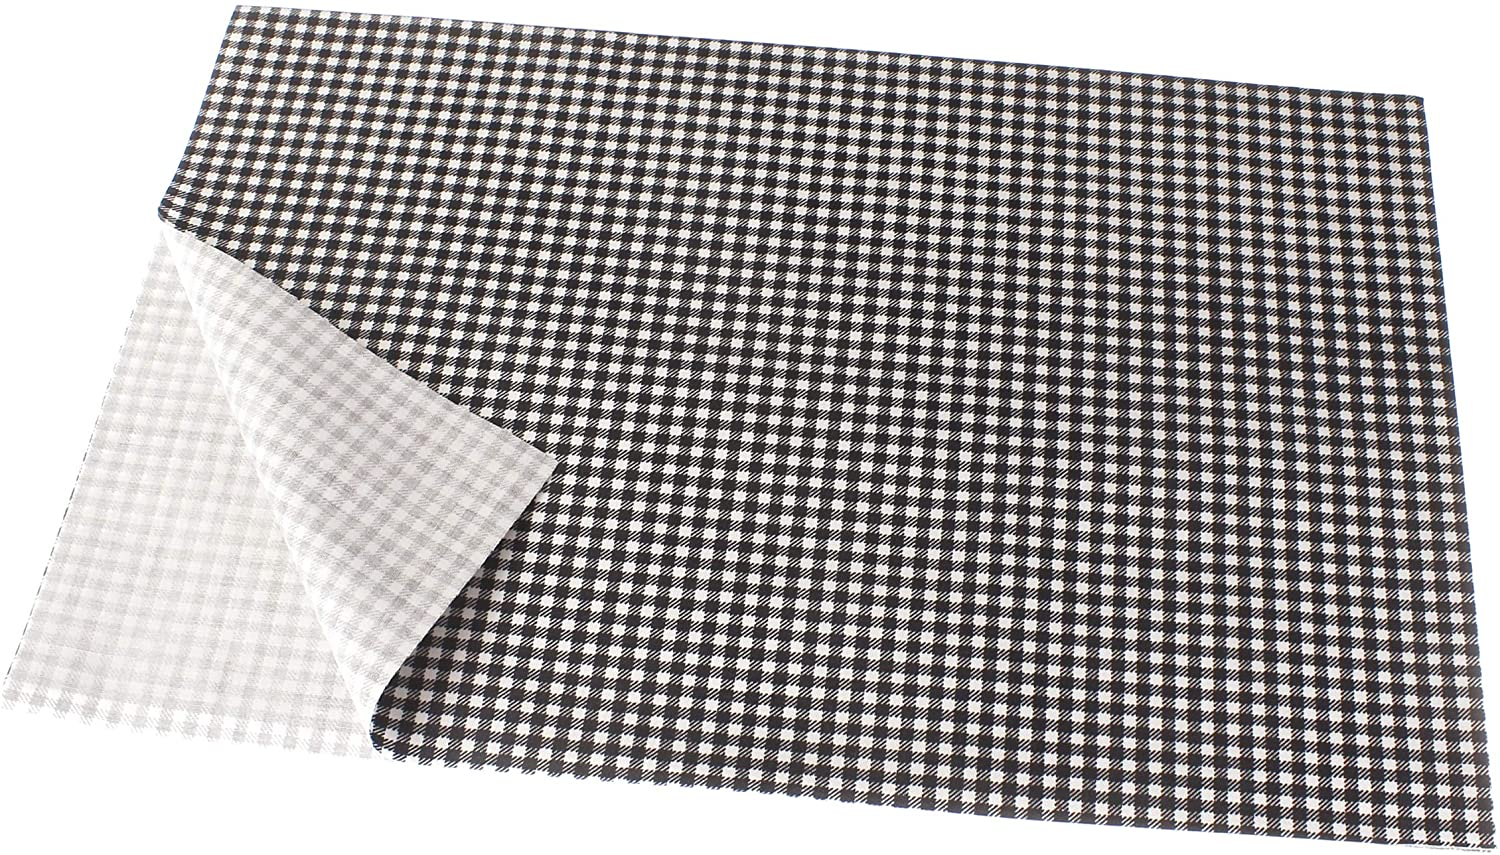 Printed Pre-Cut,High Density 100% Cotton Fabric Quarters For Sewing Masks, Quilting, 18 x 29 Inches - Black Gingham Plaid